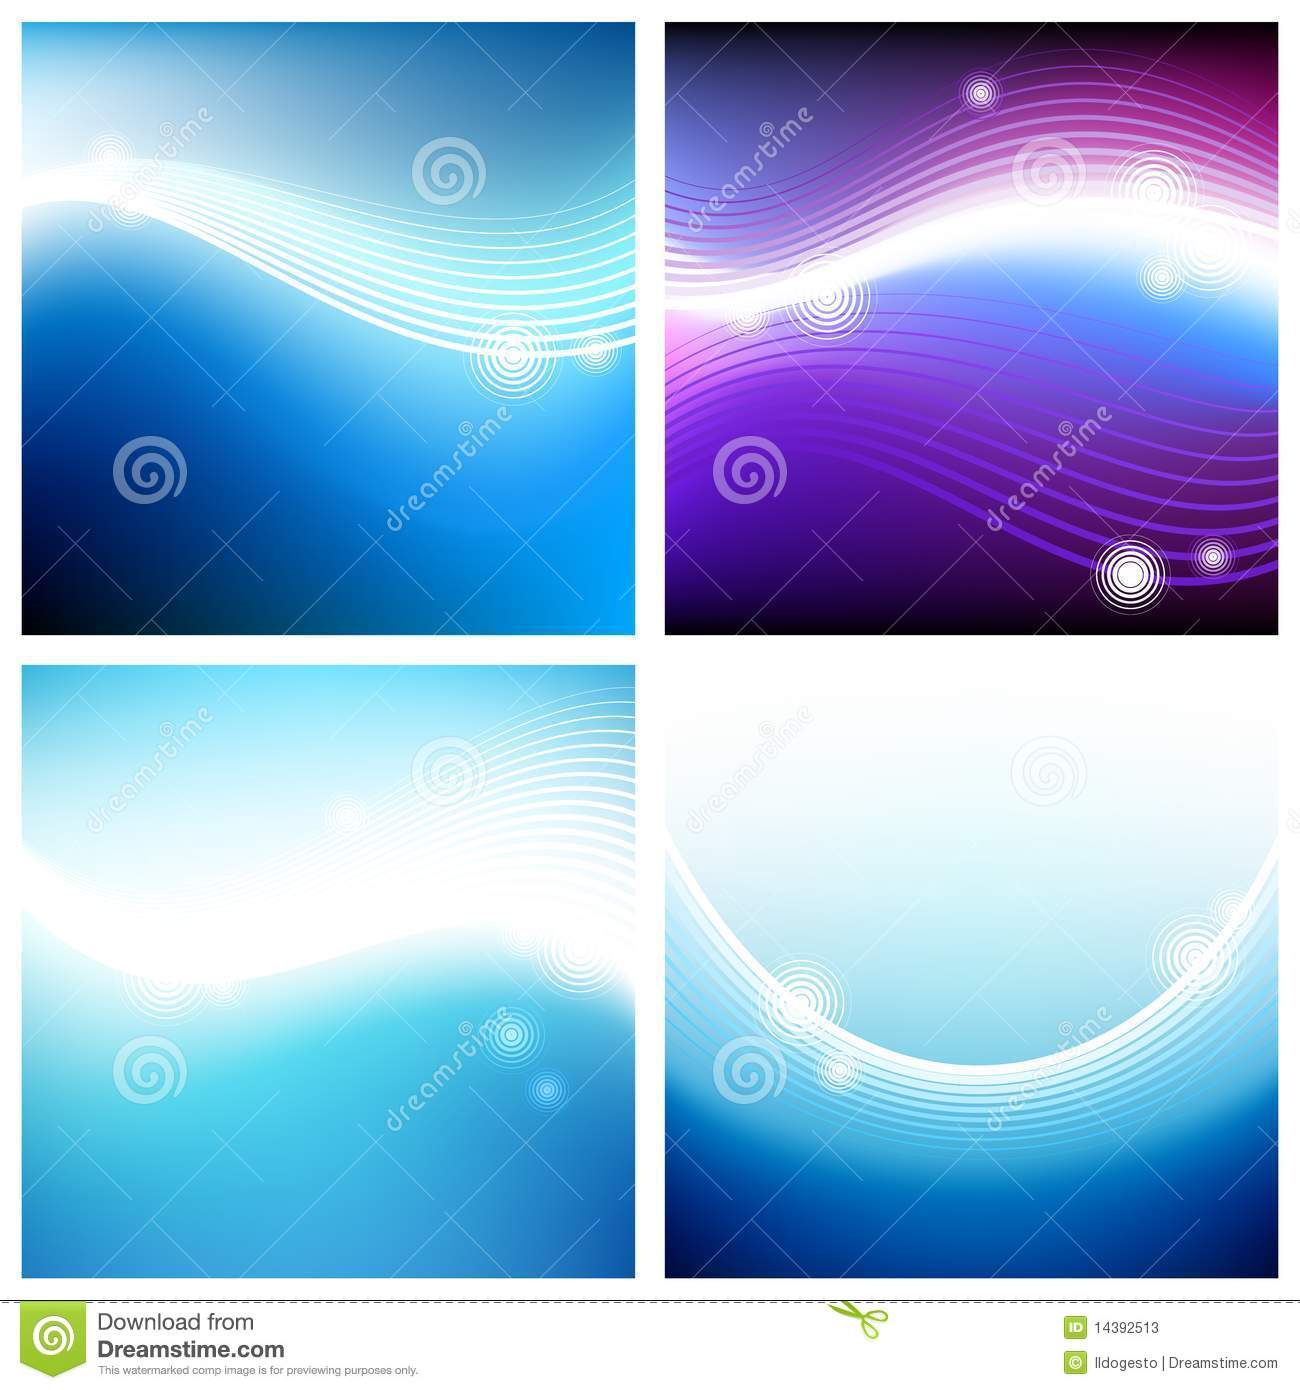 Vivid Backgrounds Space Stock s Image